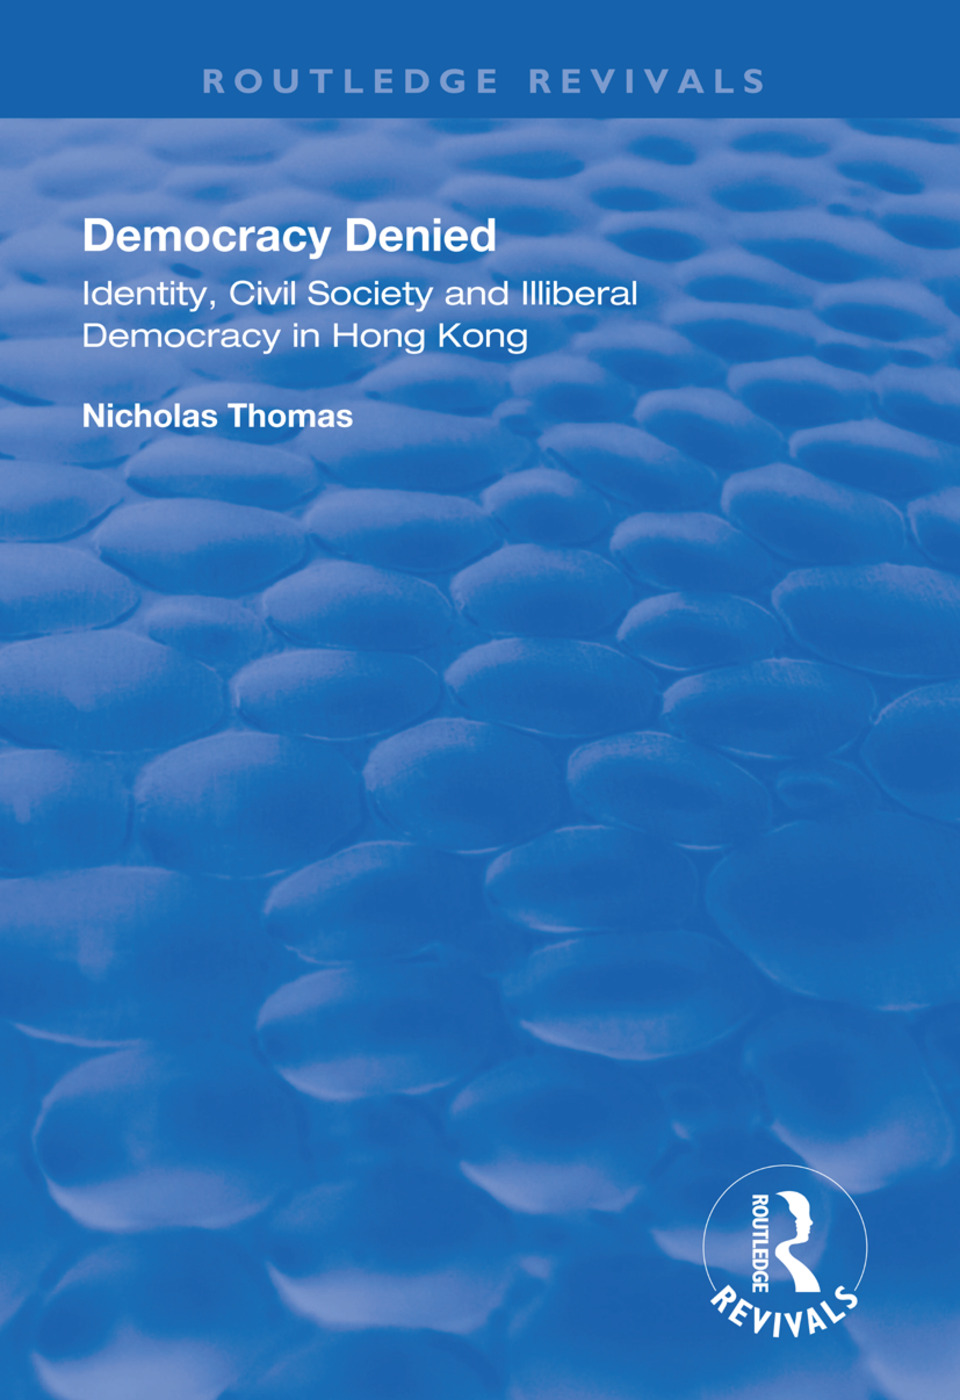 Democracy Denied: Identity, Civil Society and Illiberal Democracy in Hong Kong book cover